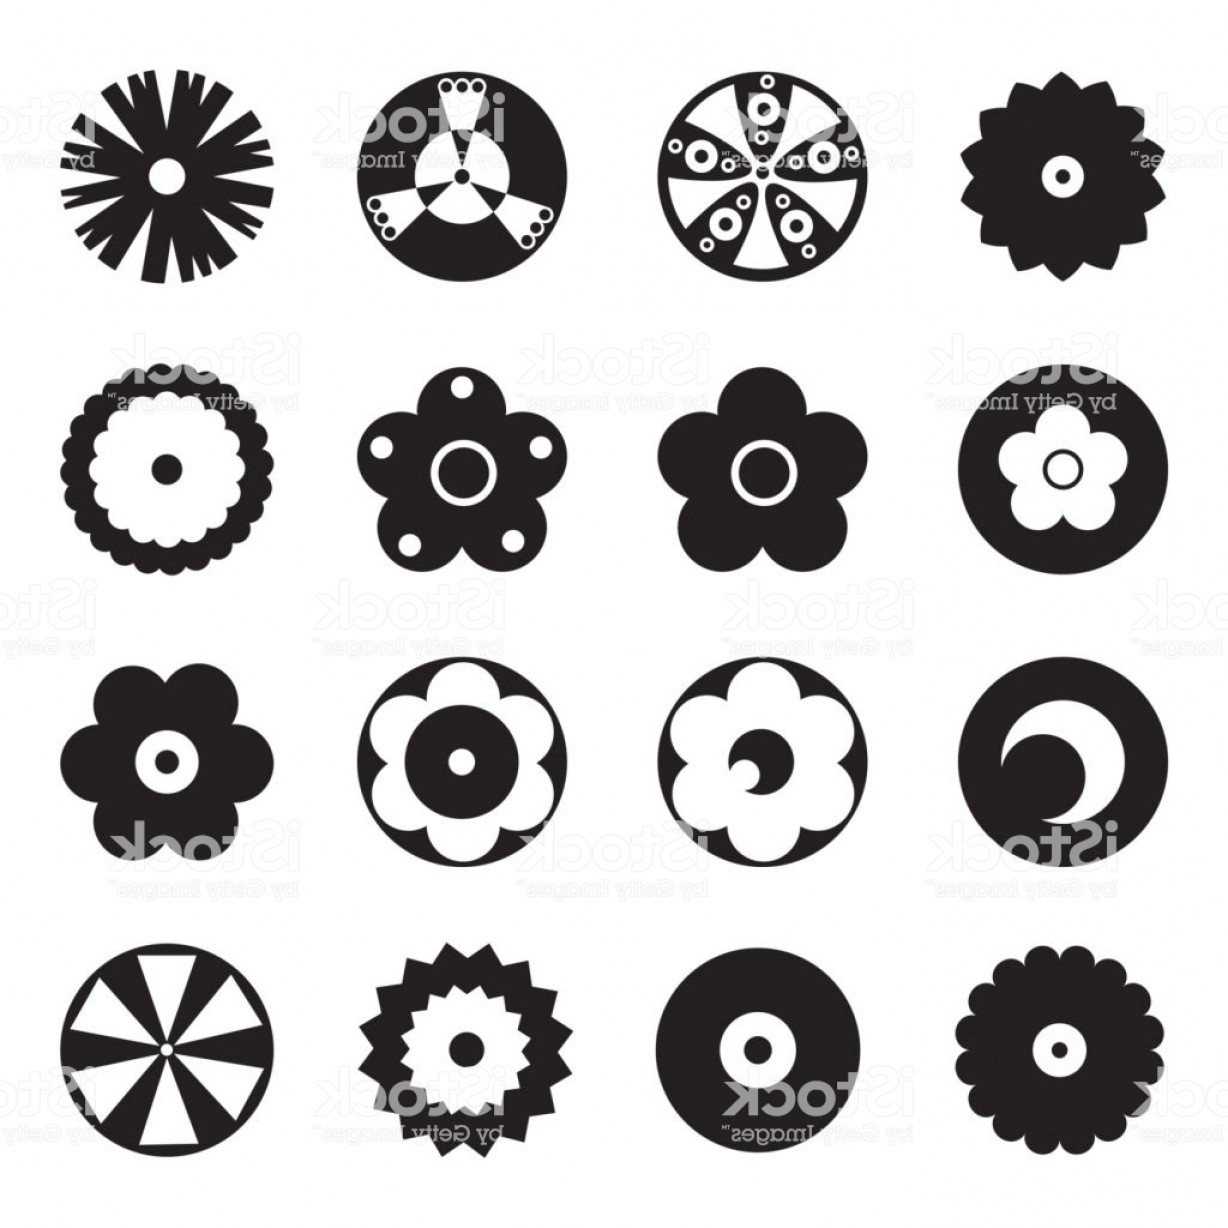 Gear Vector Icons Large: Large Set Of Flat Icon Flower Icons Silhouette Isolated Pretty Retro Design For Gm